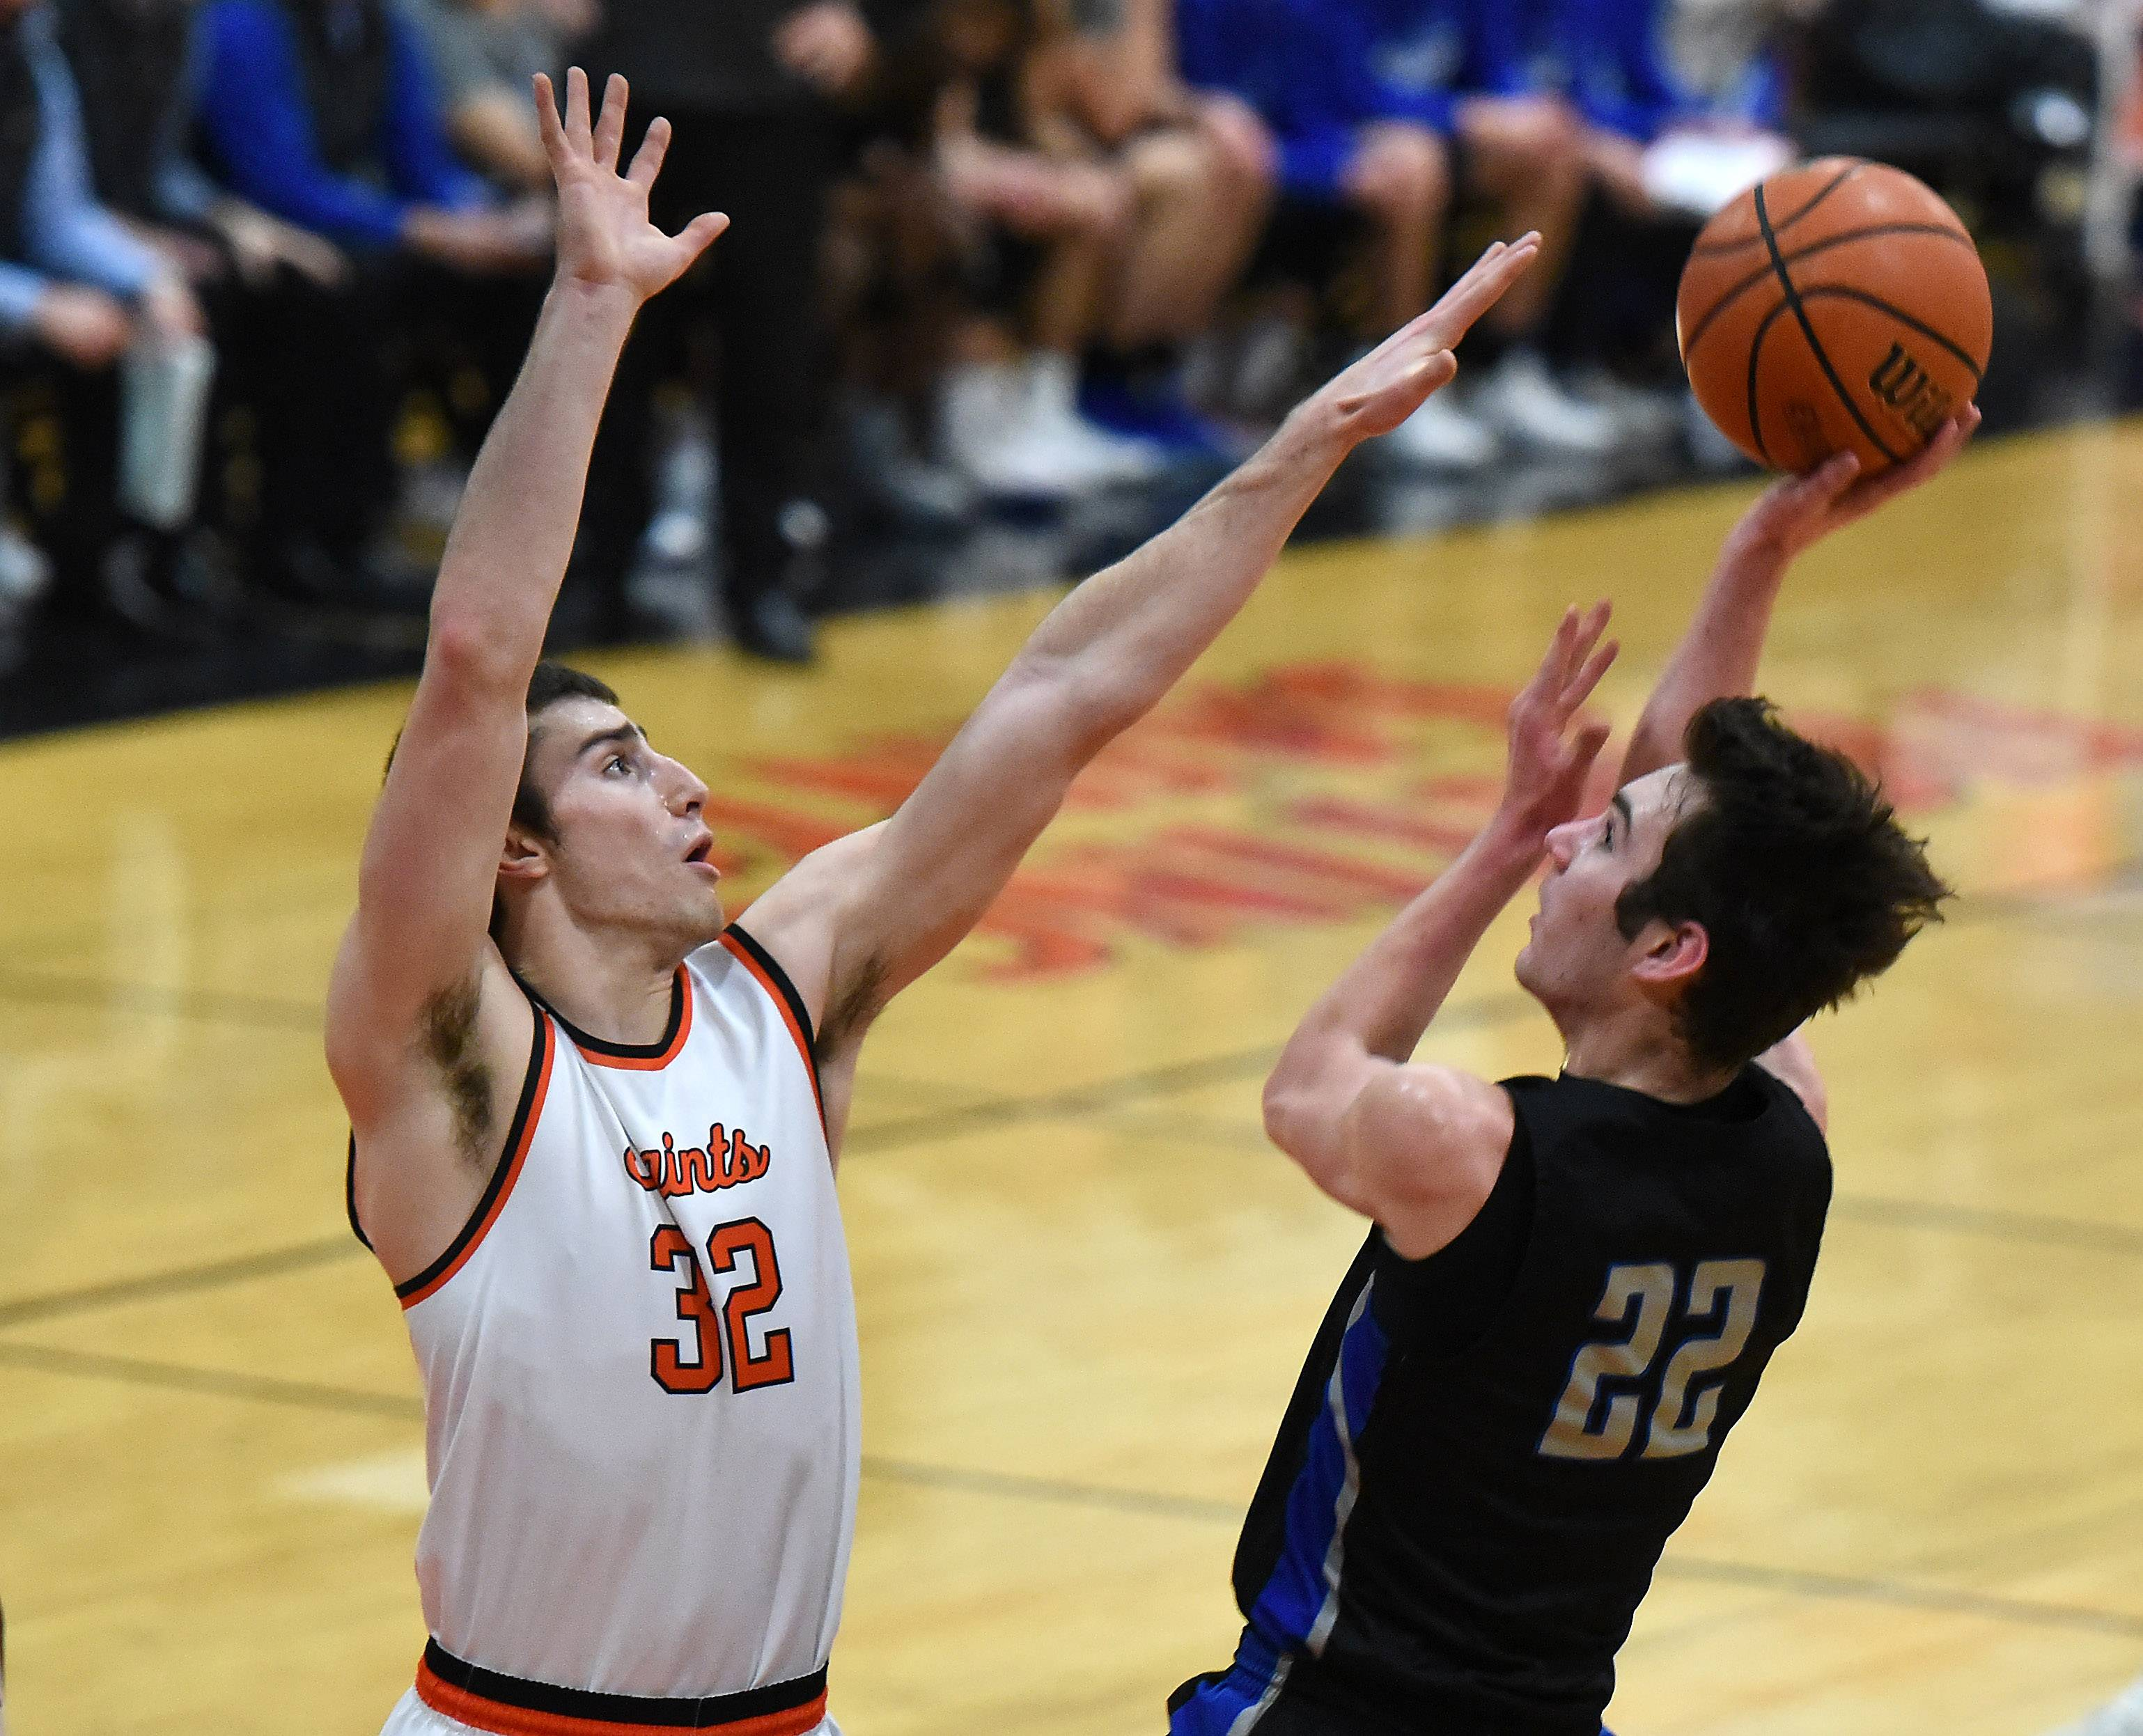 Rick West/rwest@dailyherald.comSt. Charles East's Justin Hardy tries to block the shot of St. Charles North's Cade Callaghan during Friday's game at East.